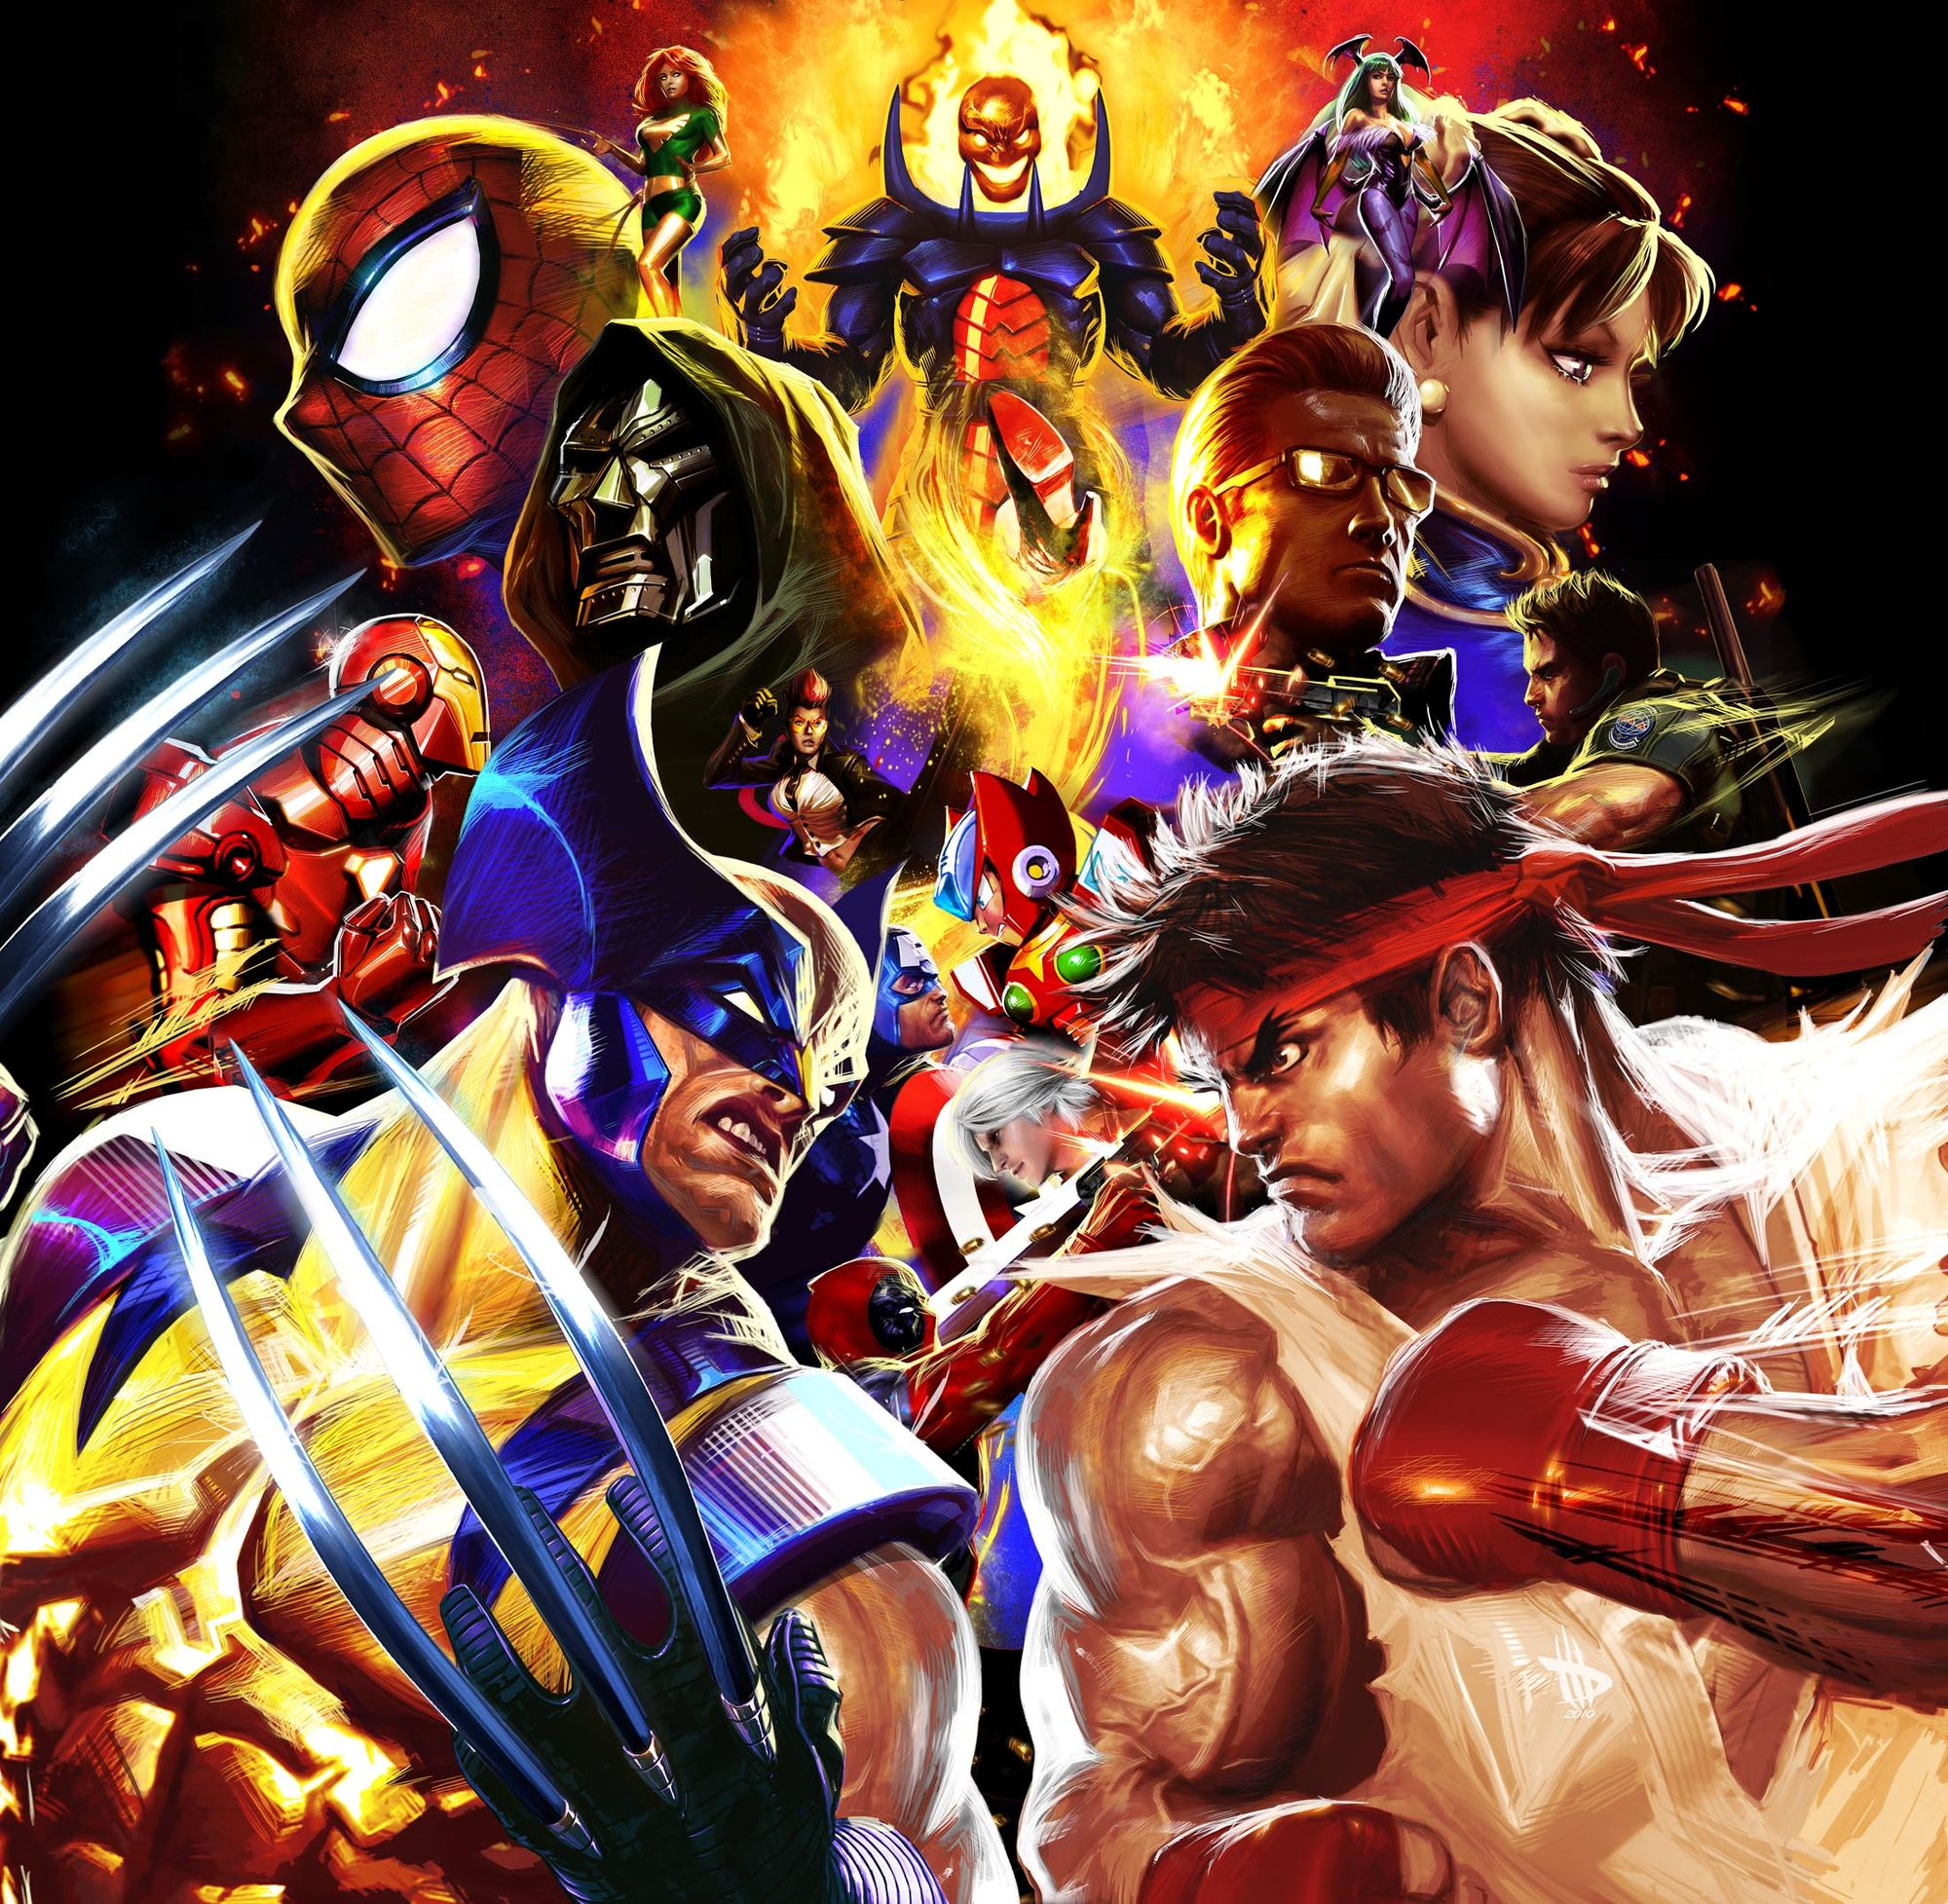 Marvel vs. Capcom 3 Art Gallery 5 out of 16 image gallery